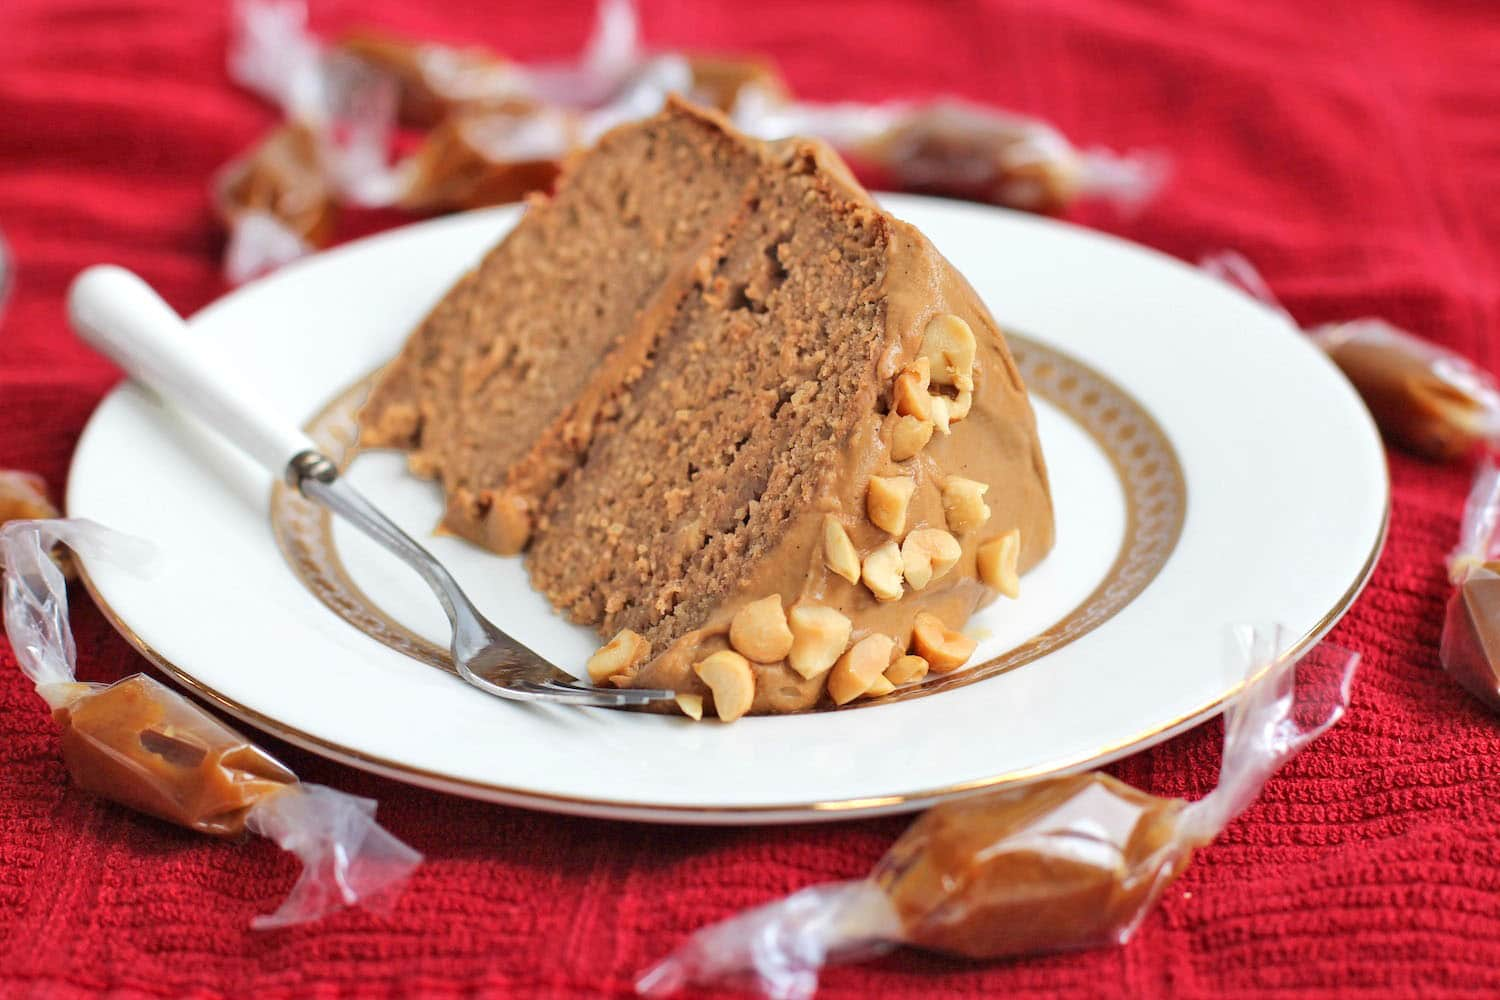 Cake Icing Recipe Peanut Butter: Healthy Peanut Butter Banana Cake With Caramel Frosting